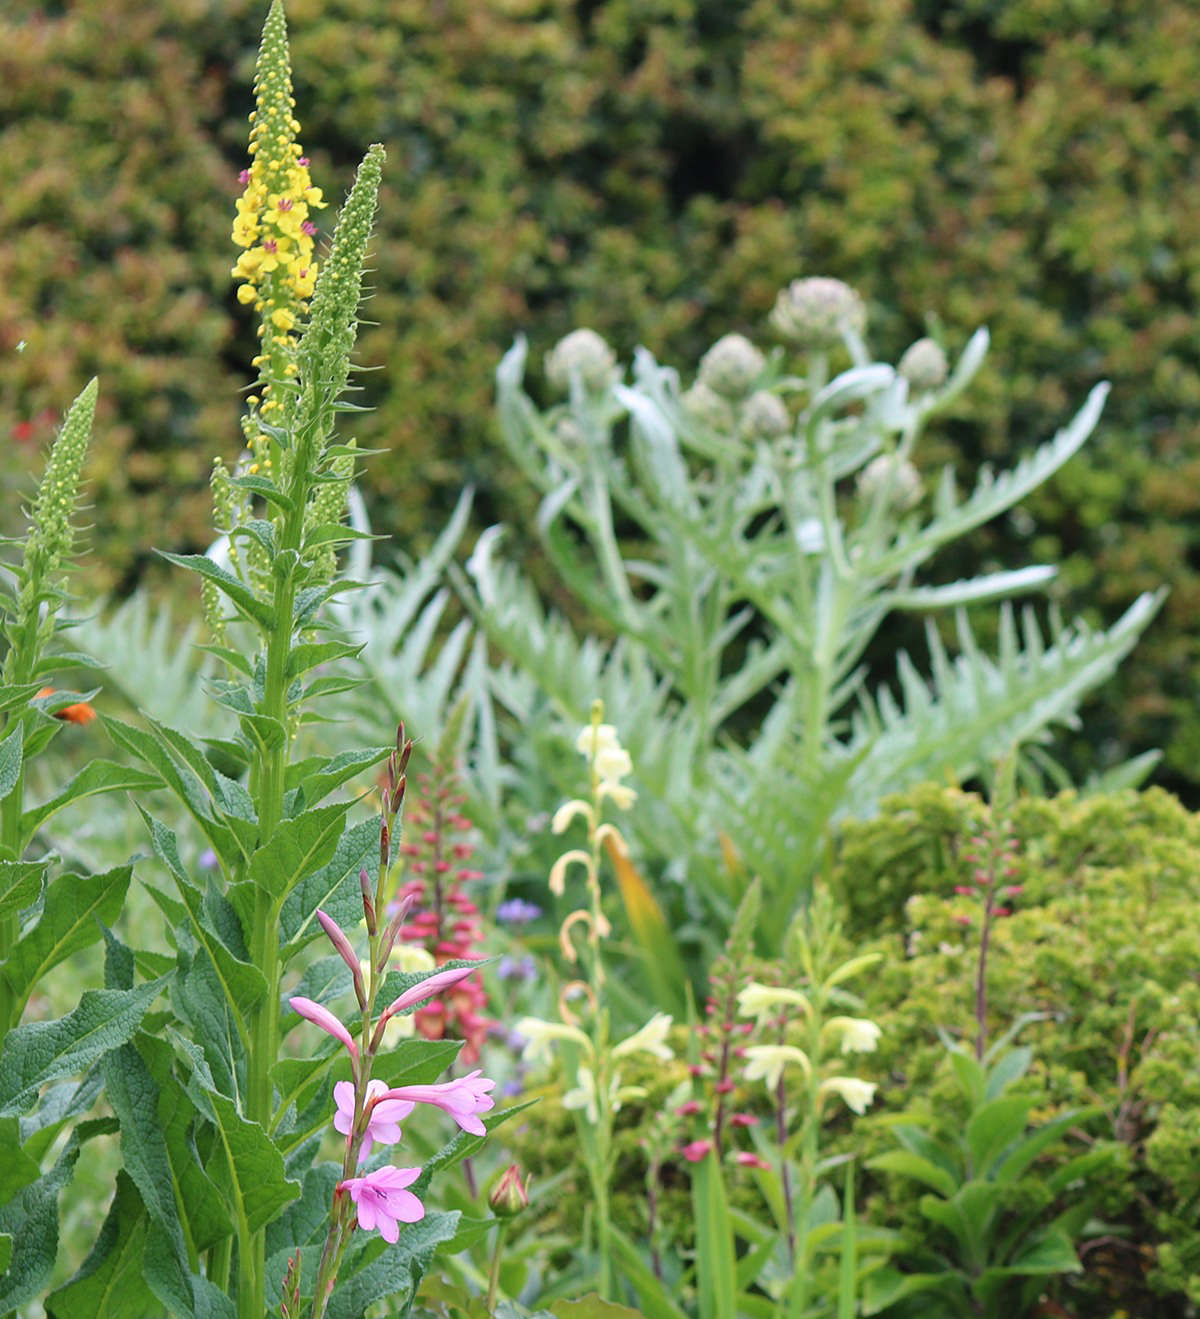 The eclectic verbascum bed shares space with watsonias and artichokes. The giant edible thistle is grown for its spectacular purple flowers.